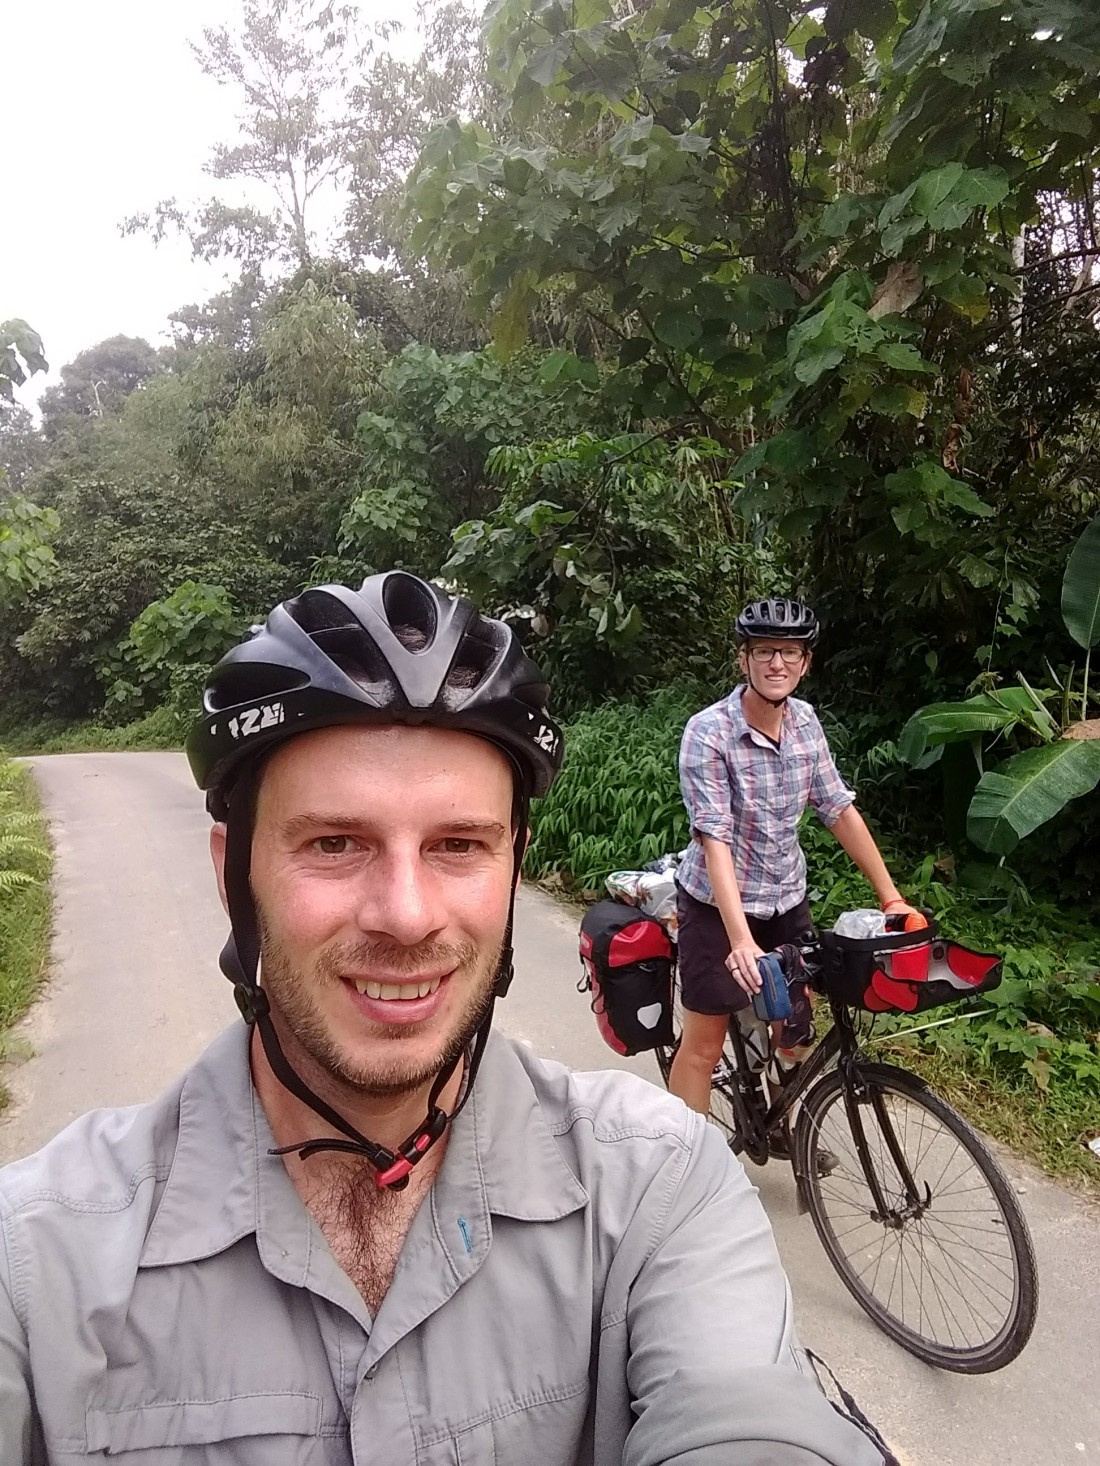 Man and woman on bikes, surrounded by tropical foliage